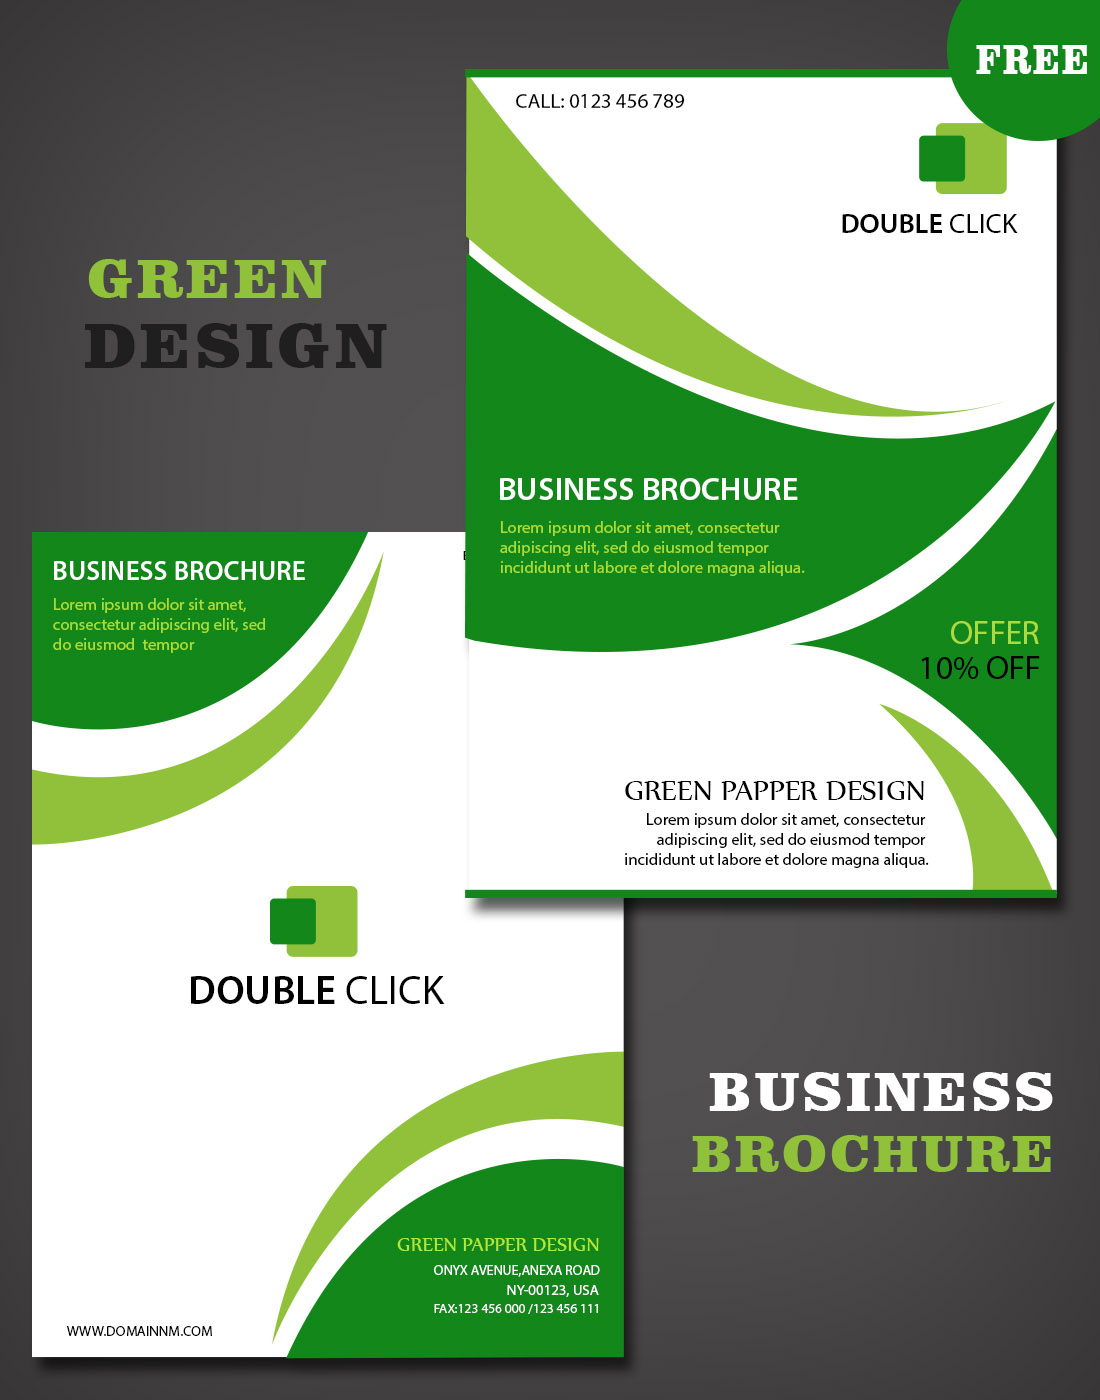 business brochure template free - business brochure templates download